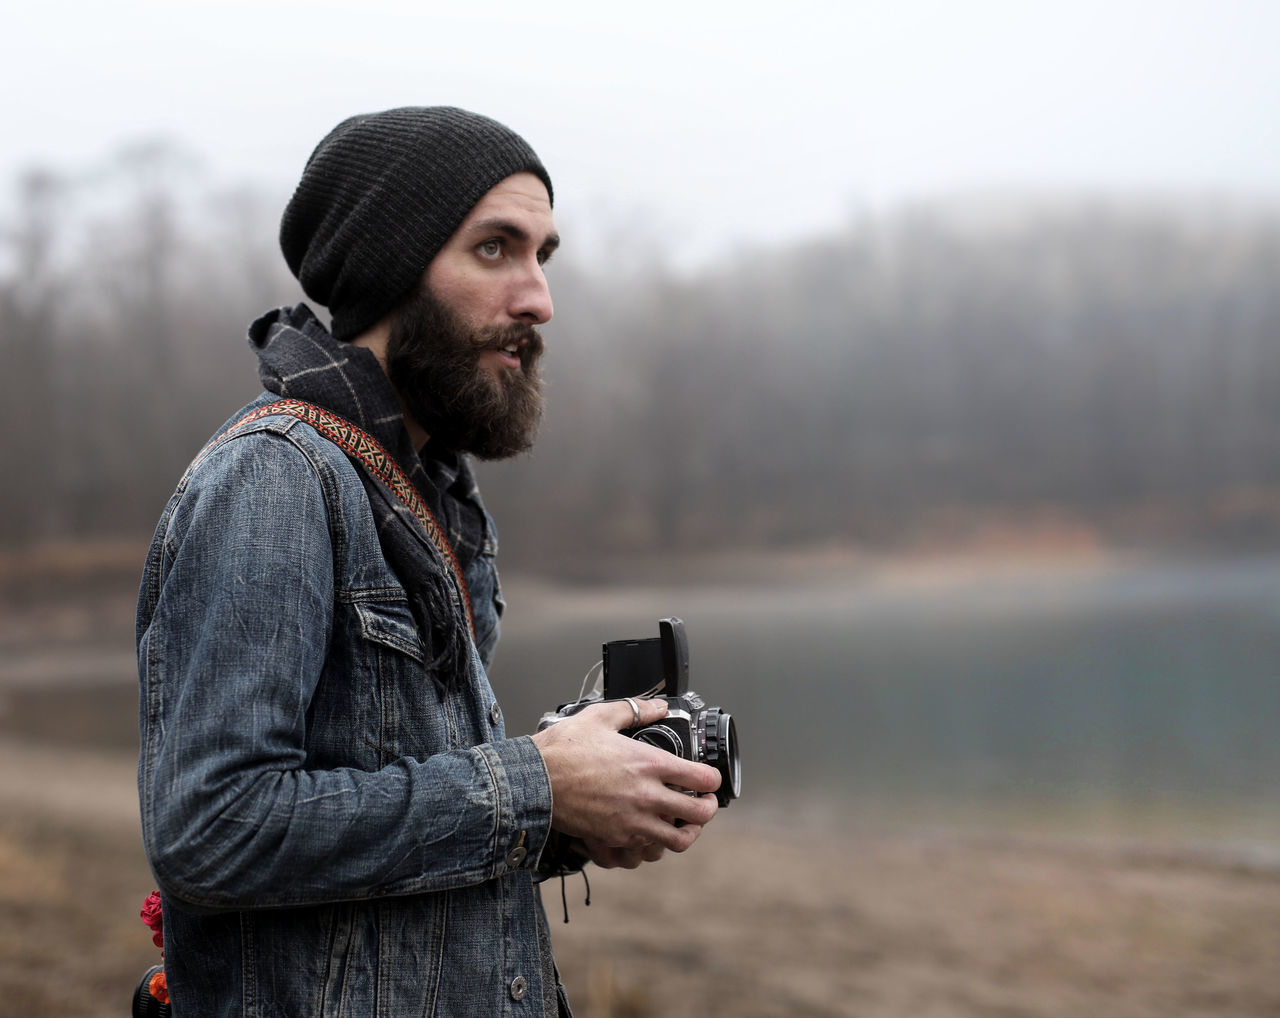 Adult Adults Only Arts Culture And Entertainment Beard Beautiful People Facial Hair Hipster - Person Holding Knit Hat Lifestyles Males  Men Nature One Man Only One Person One Young Man Only Only Men Outdoors People Portrait Sea Warm Clothing Water Young Adult Young Men